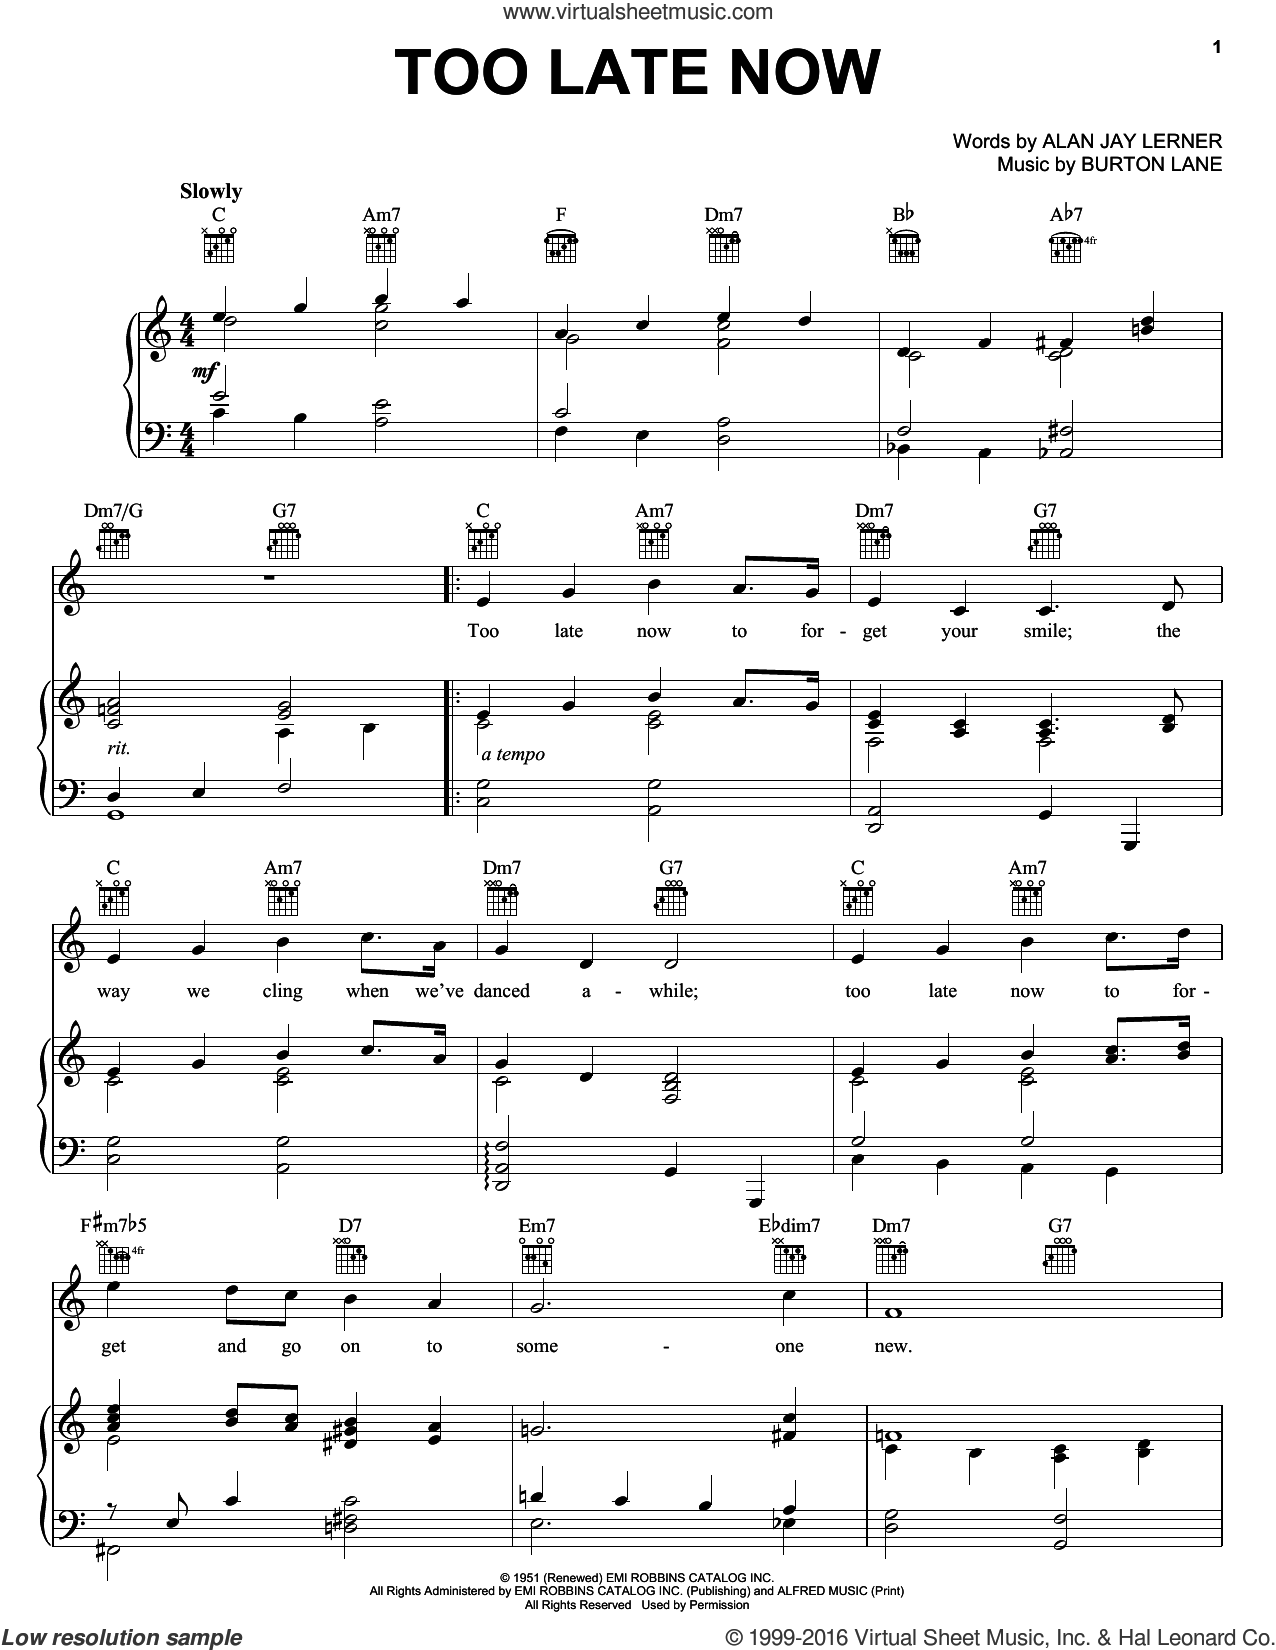 Too Late Now sheet music for voice, piano or guitar by Burton Lane